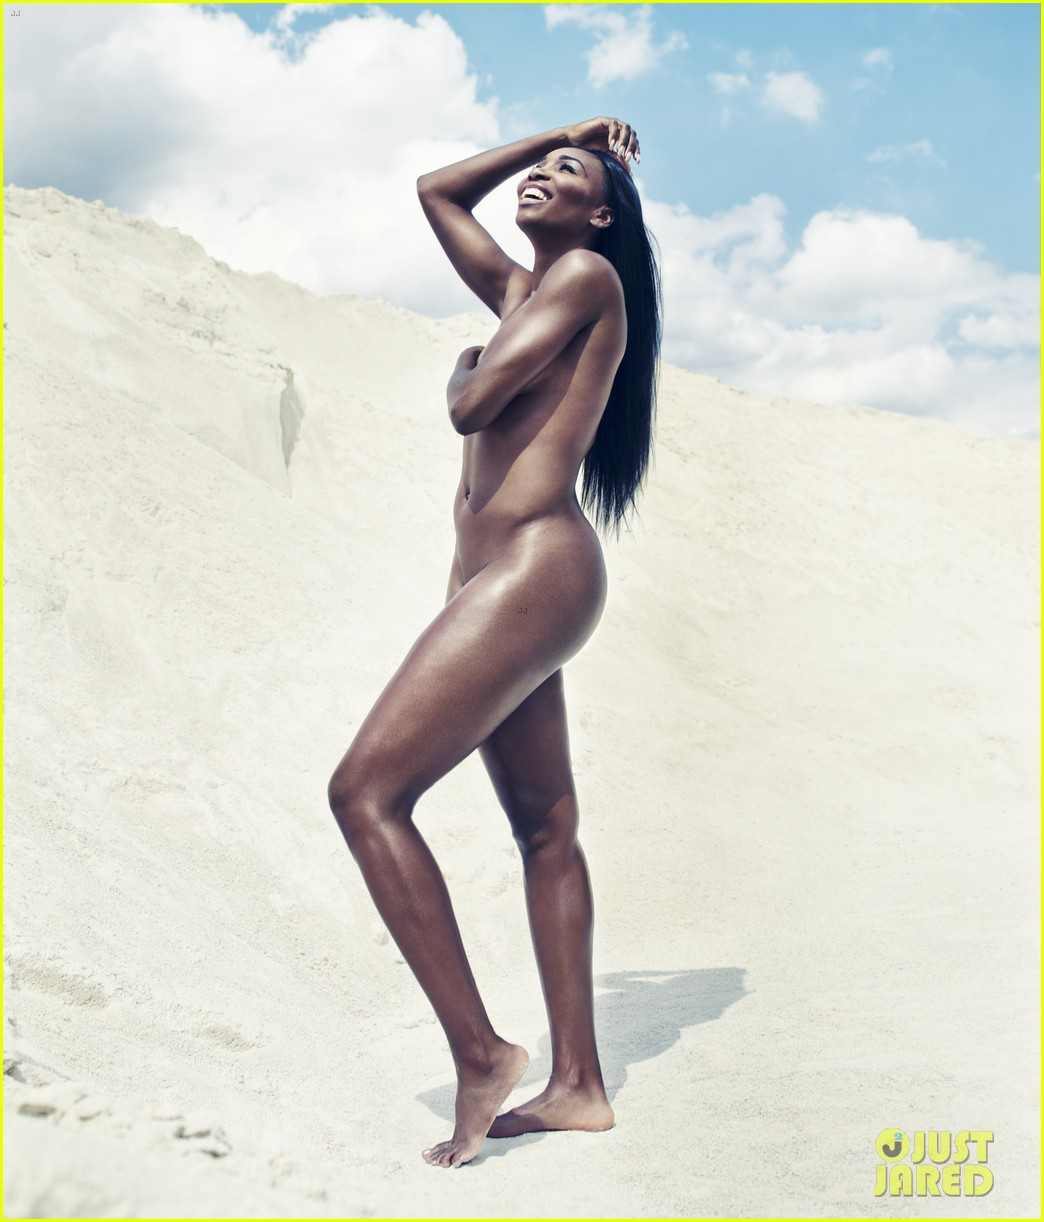 venus-williams-tomas-berdych-go-naked-fo